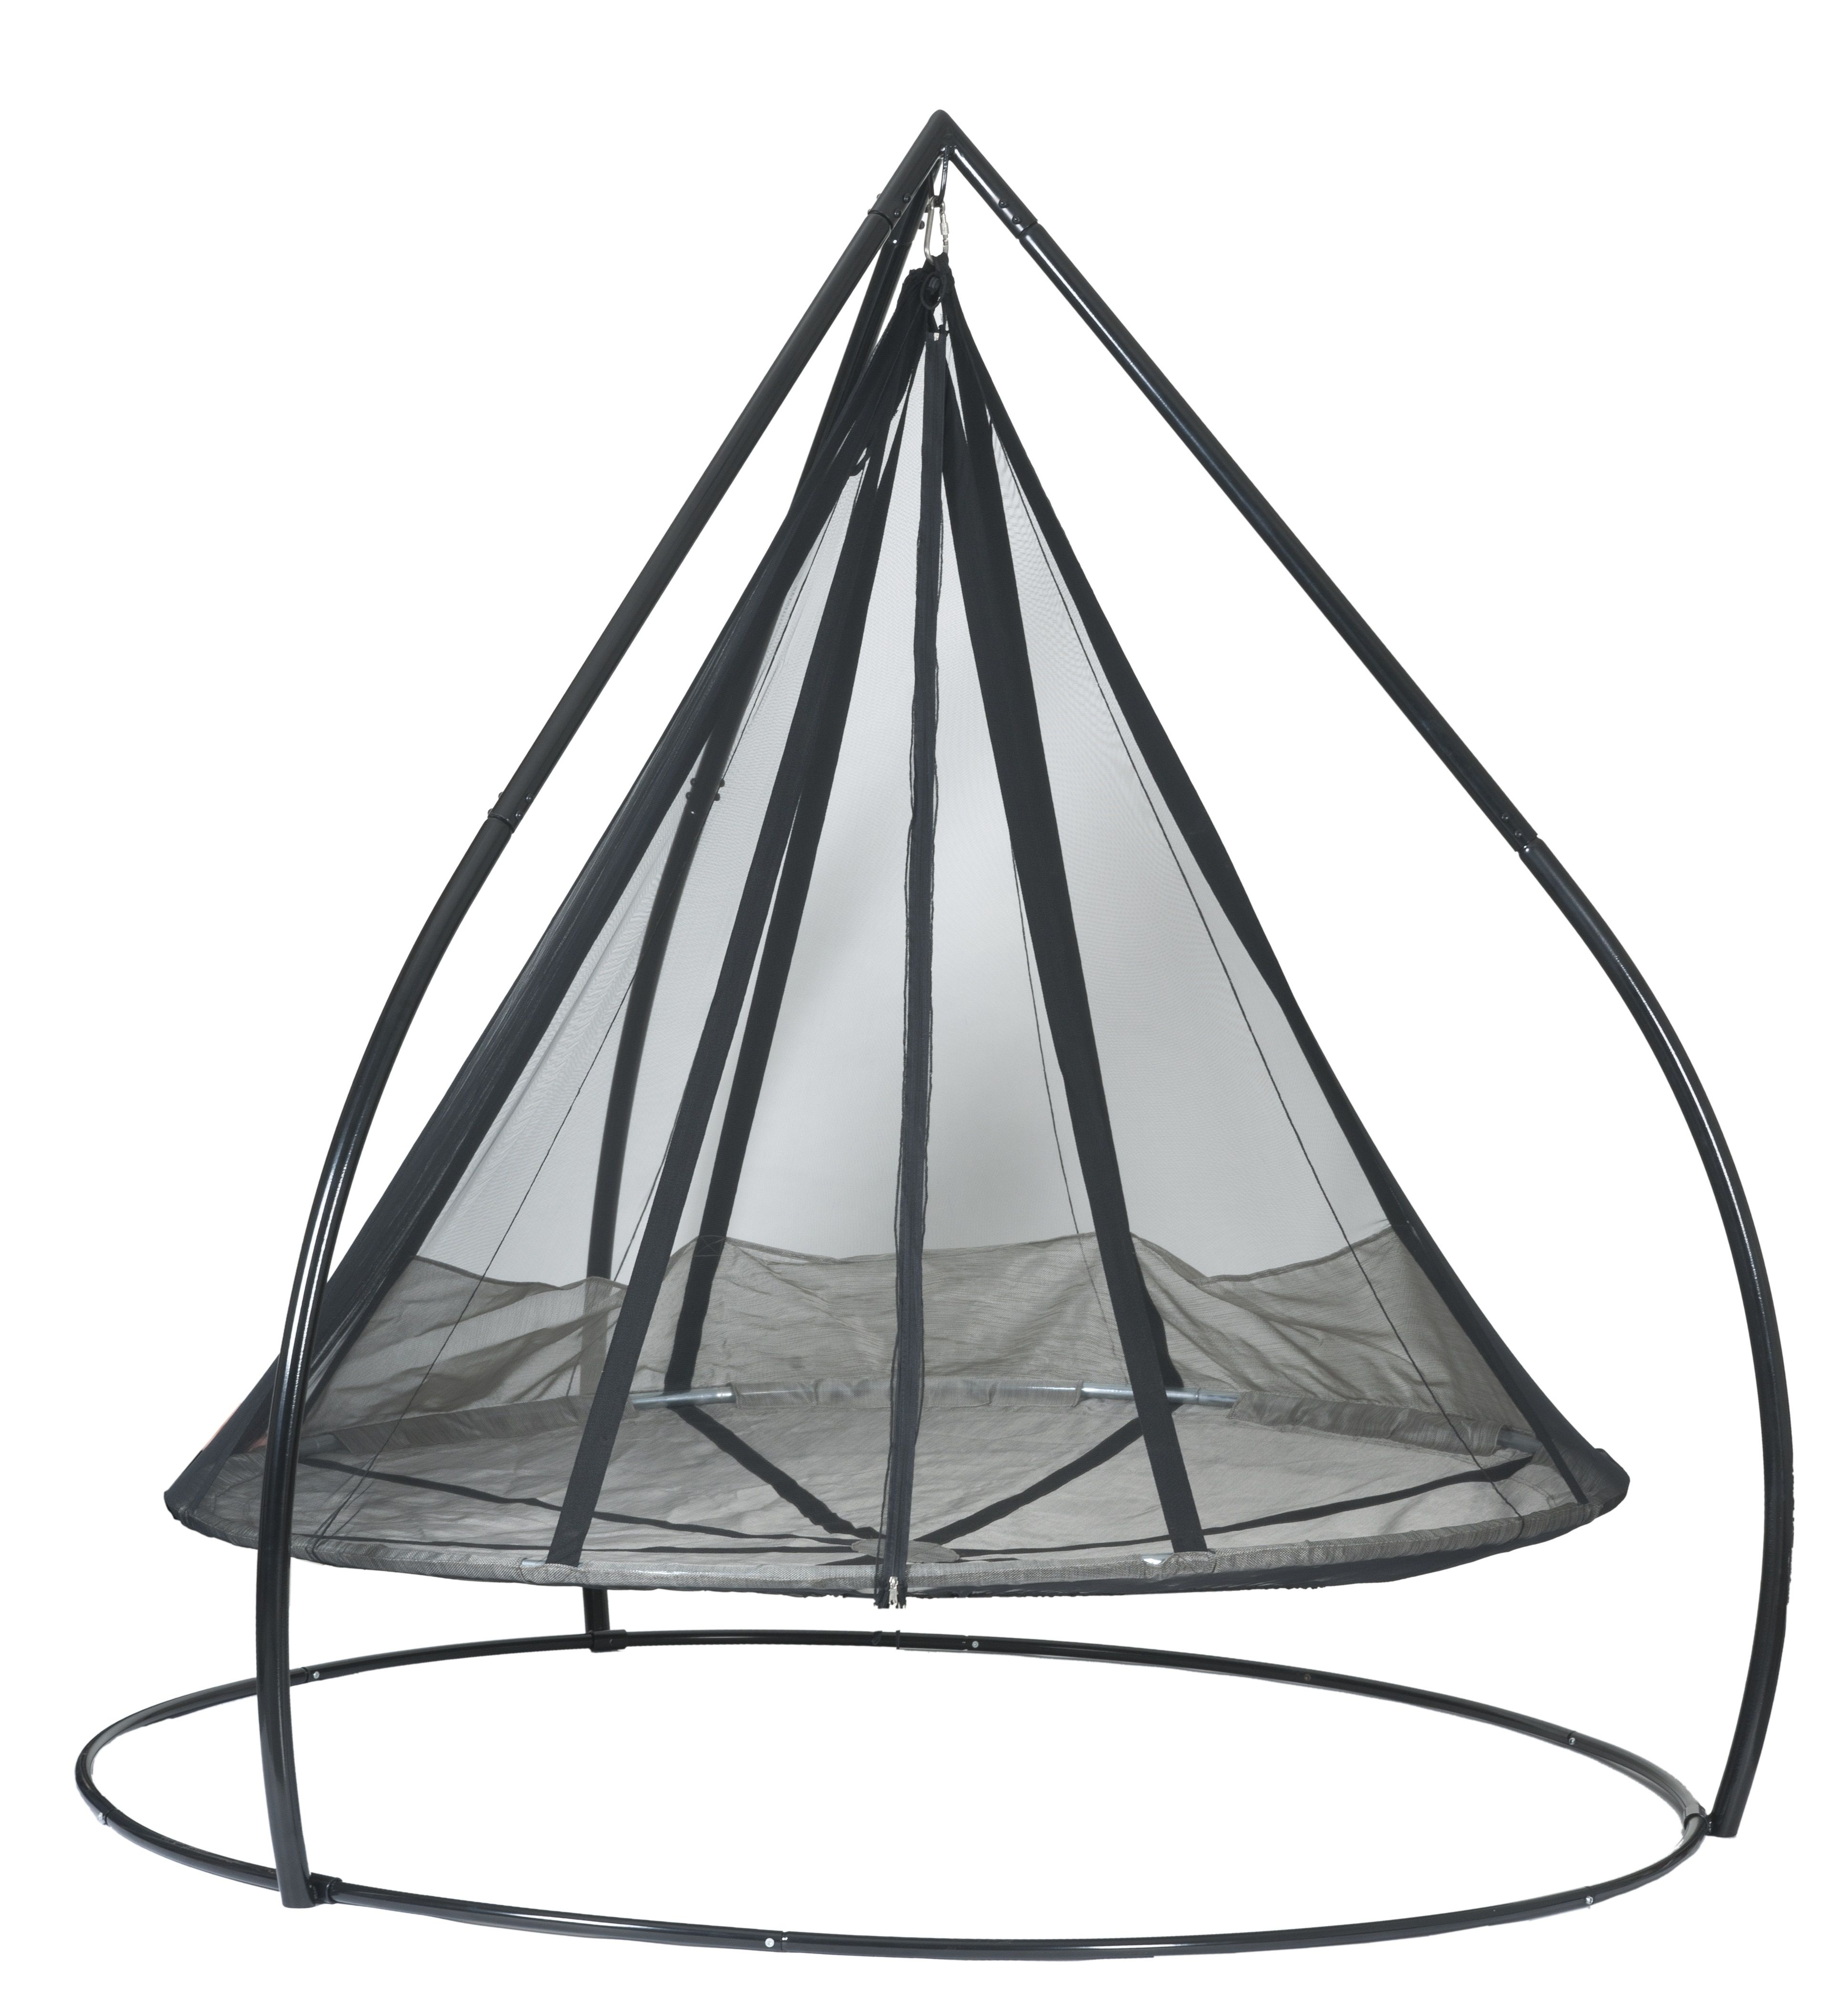 NEW FlyingSaucer Hanging Chair from FlowerHouse Includes mesh